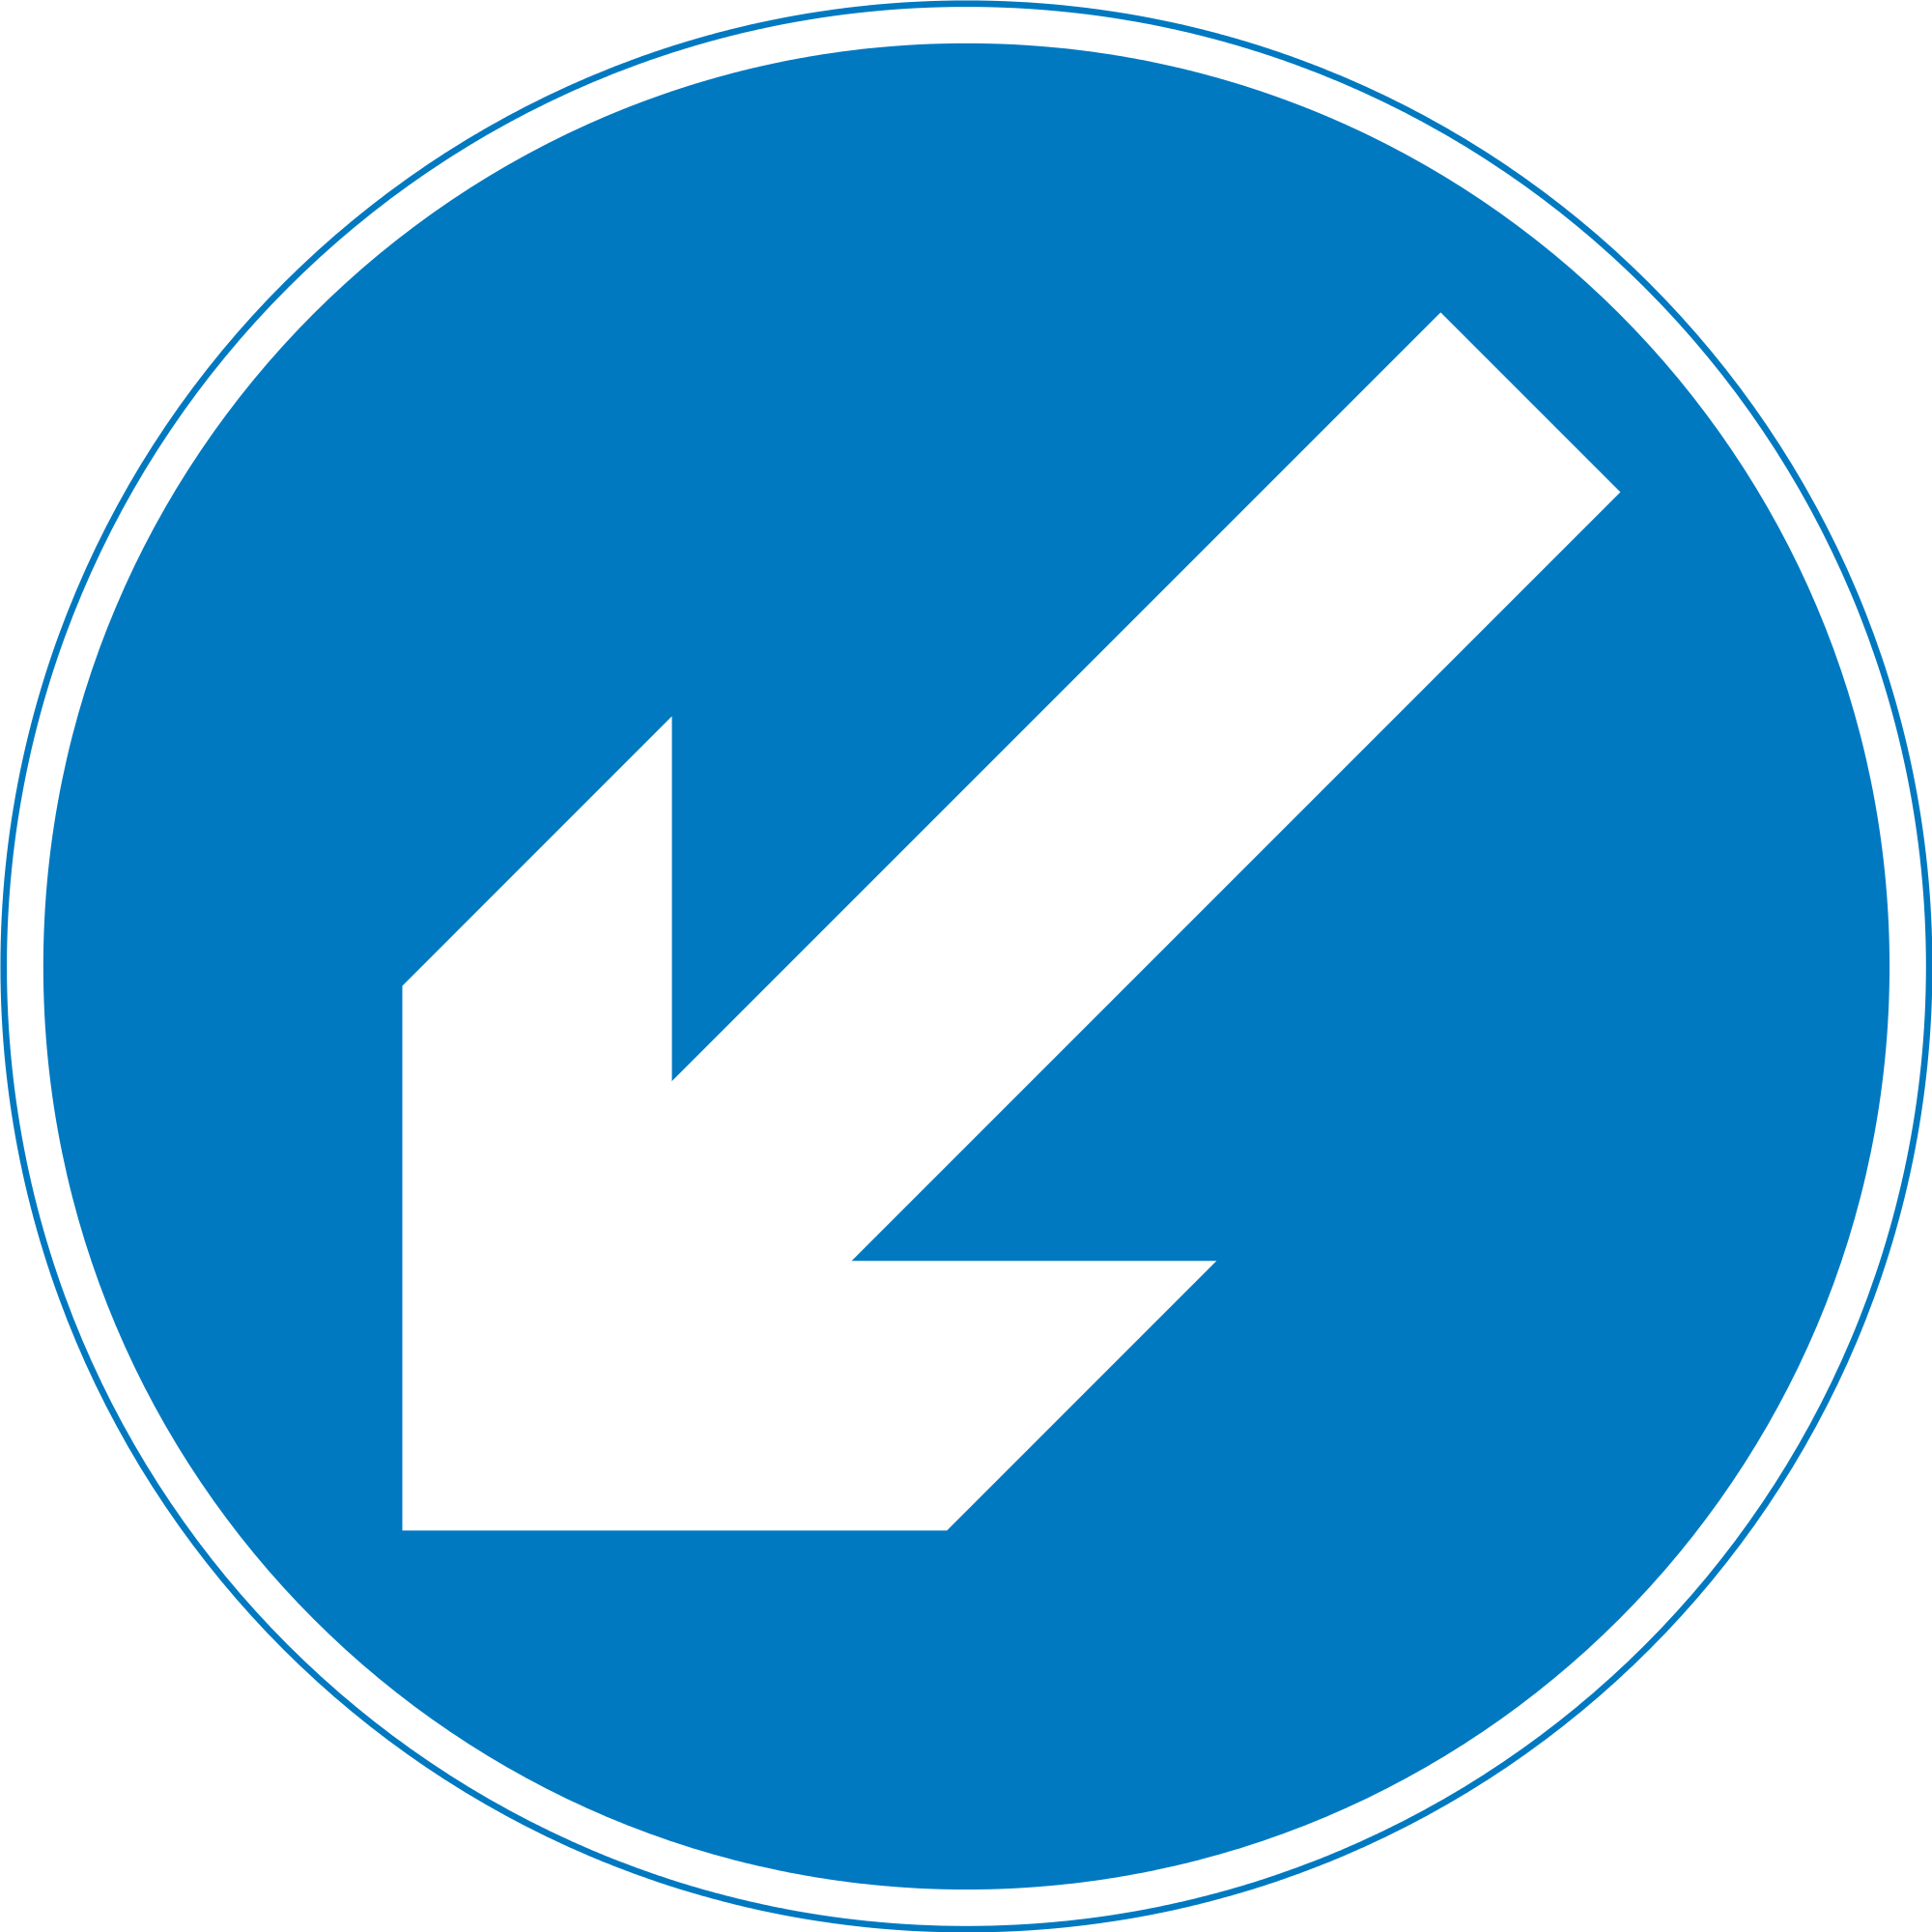 Road sign board png. Clipart arrows signboard